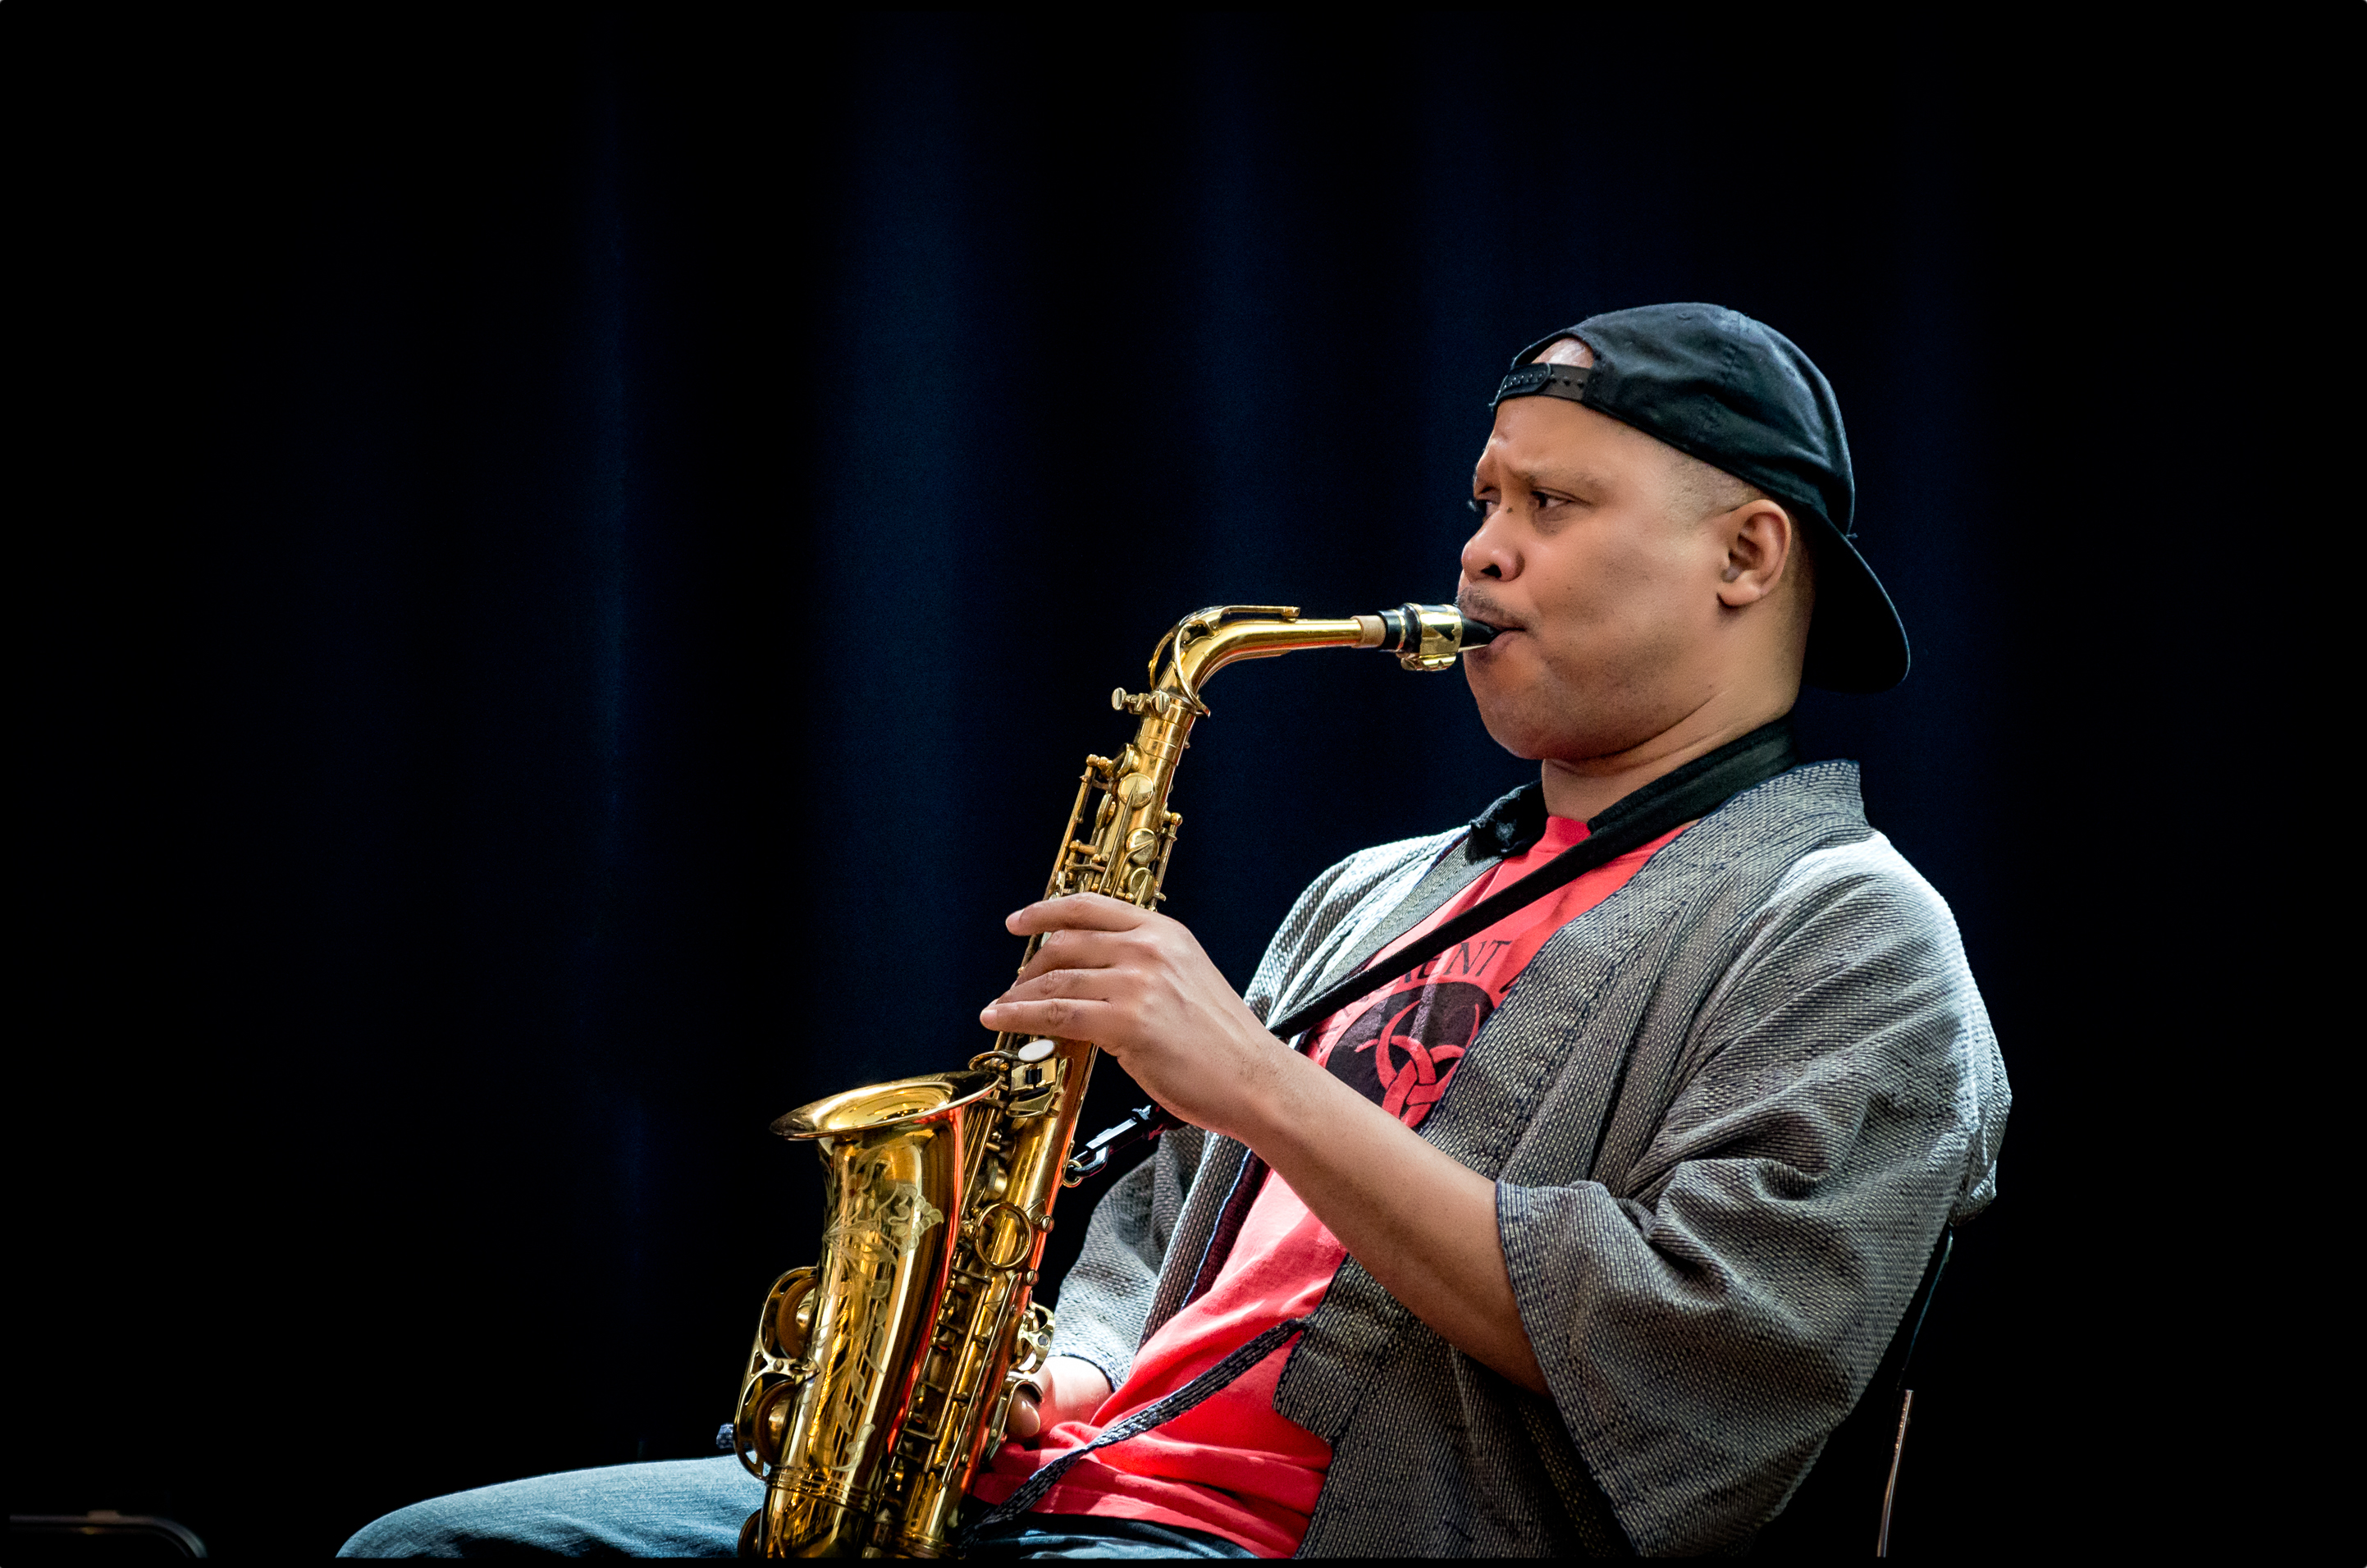 Steve Coleman opens the Art of Jazz series at the Albright-Knox Art Gallery.